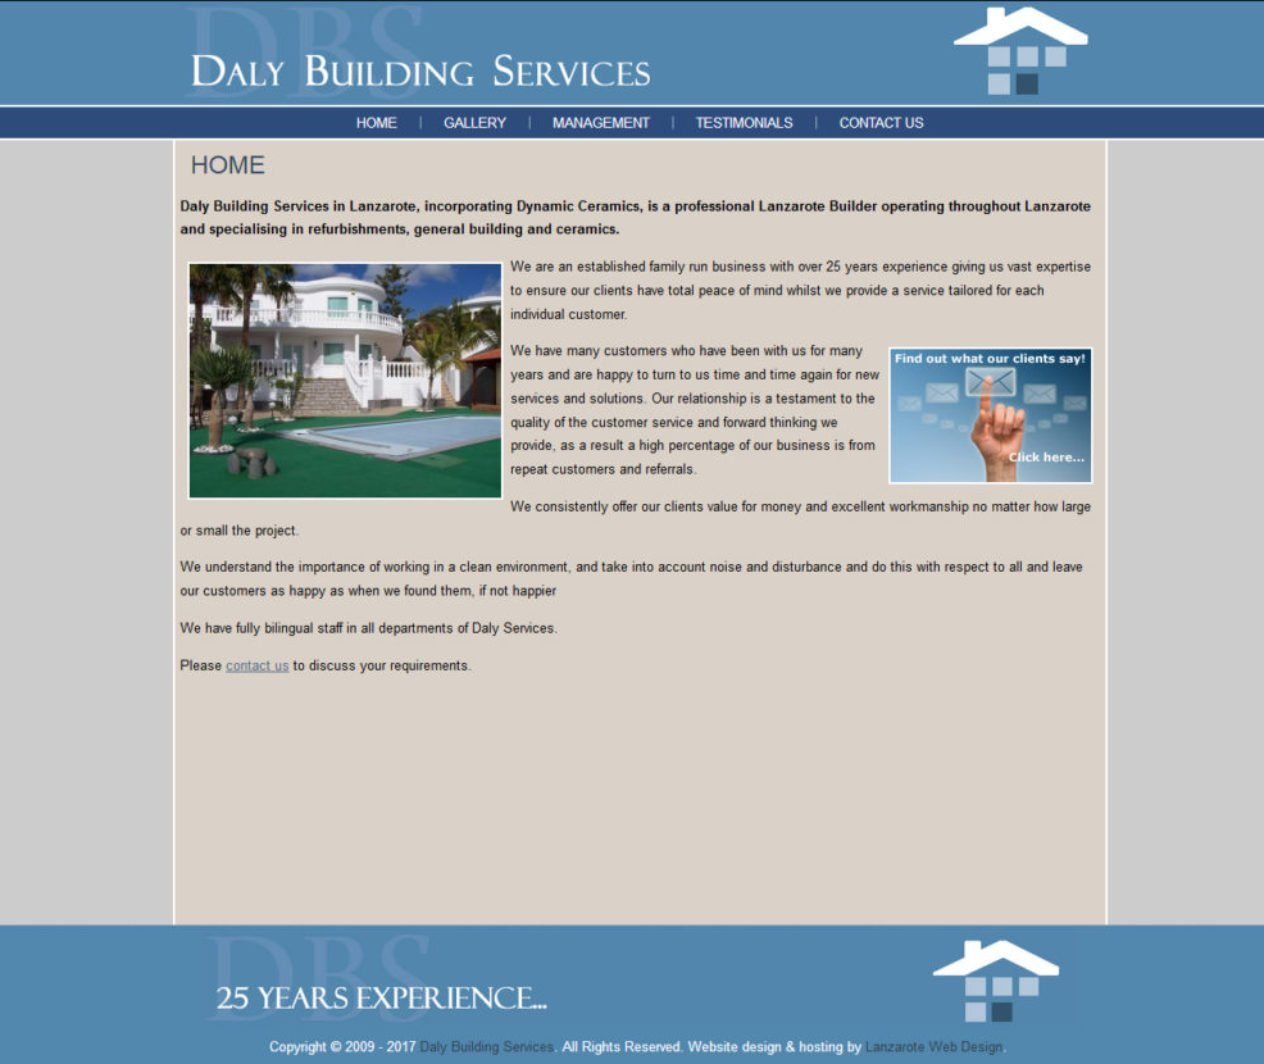 Daly Building Services